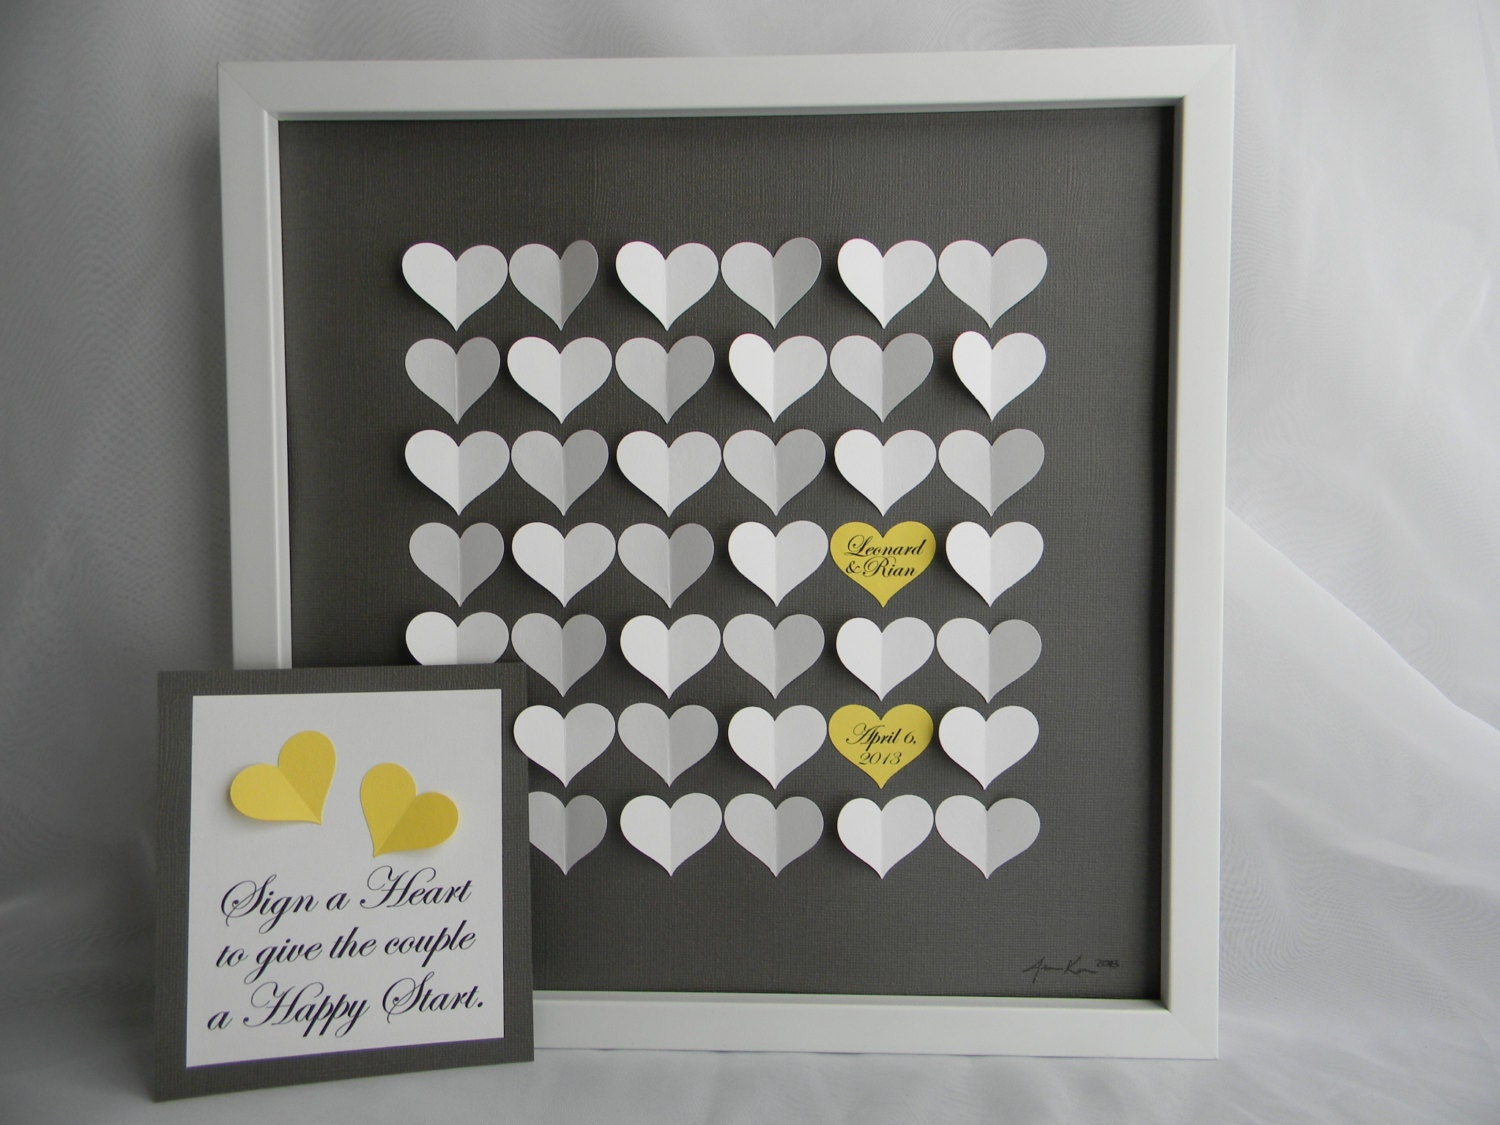 Alternative Wedding Gifts: Wedding Guest Book Alternative 3D Paper Hearts Lovely Bridal